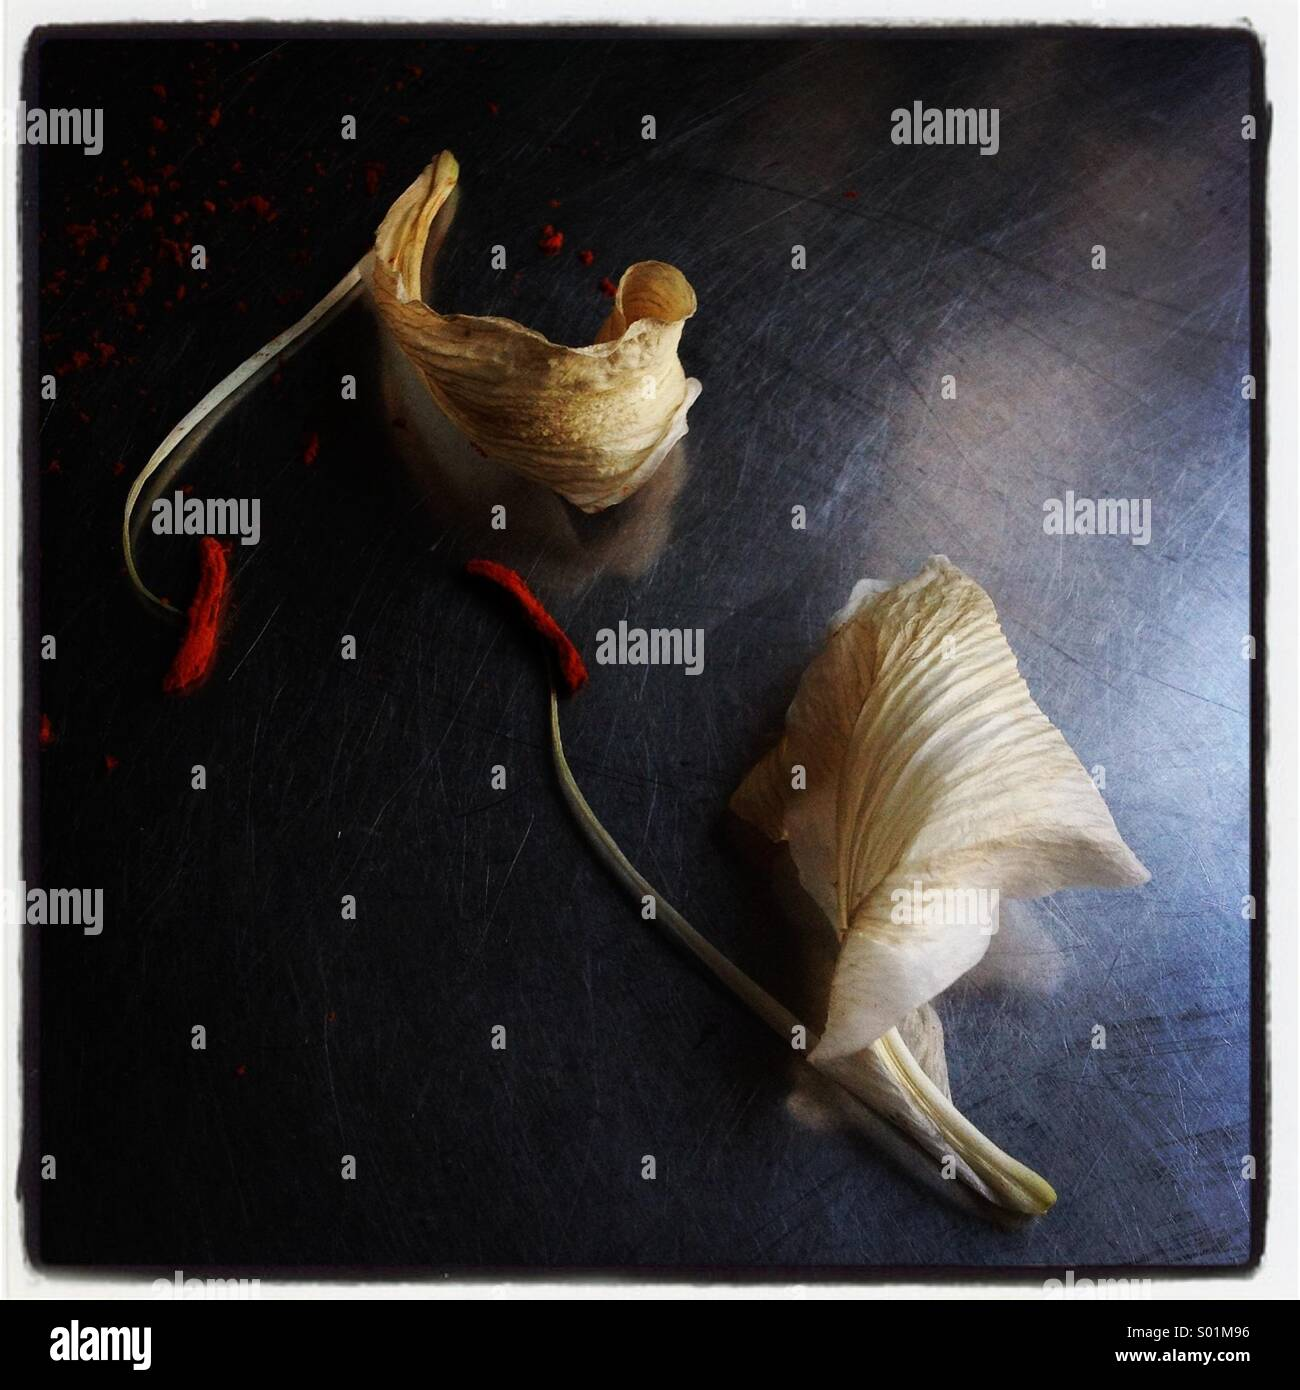 Dead lily petals on metallic surface - Stock Image